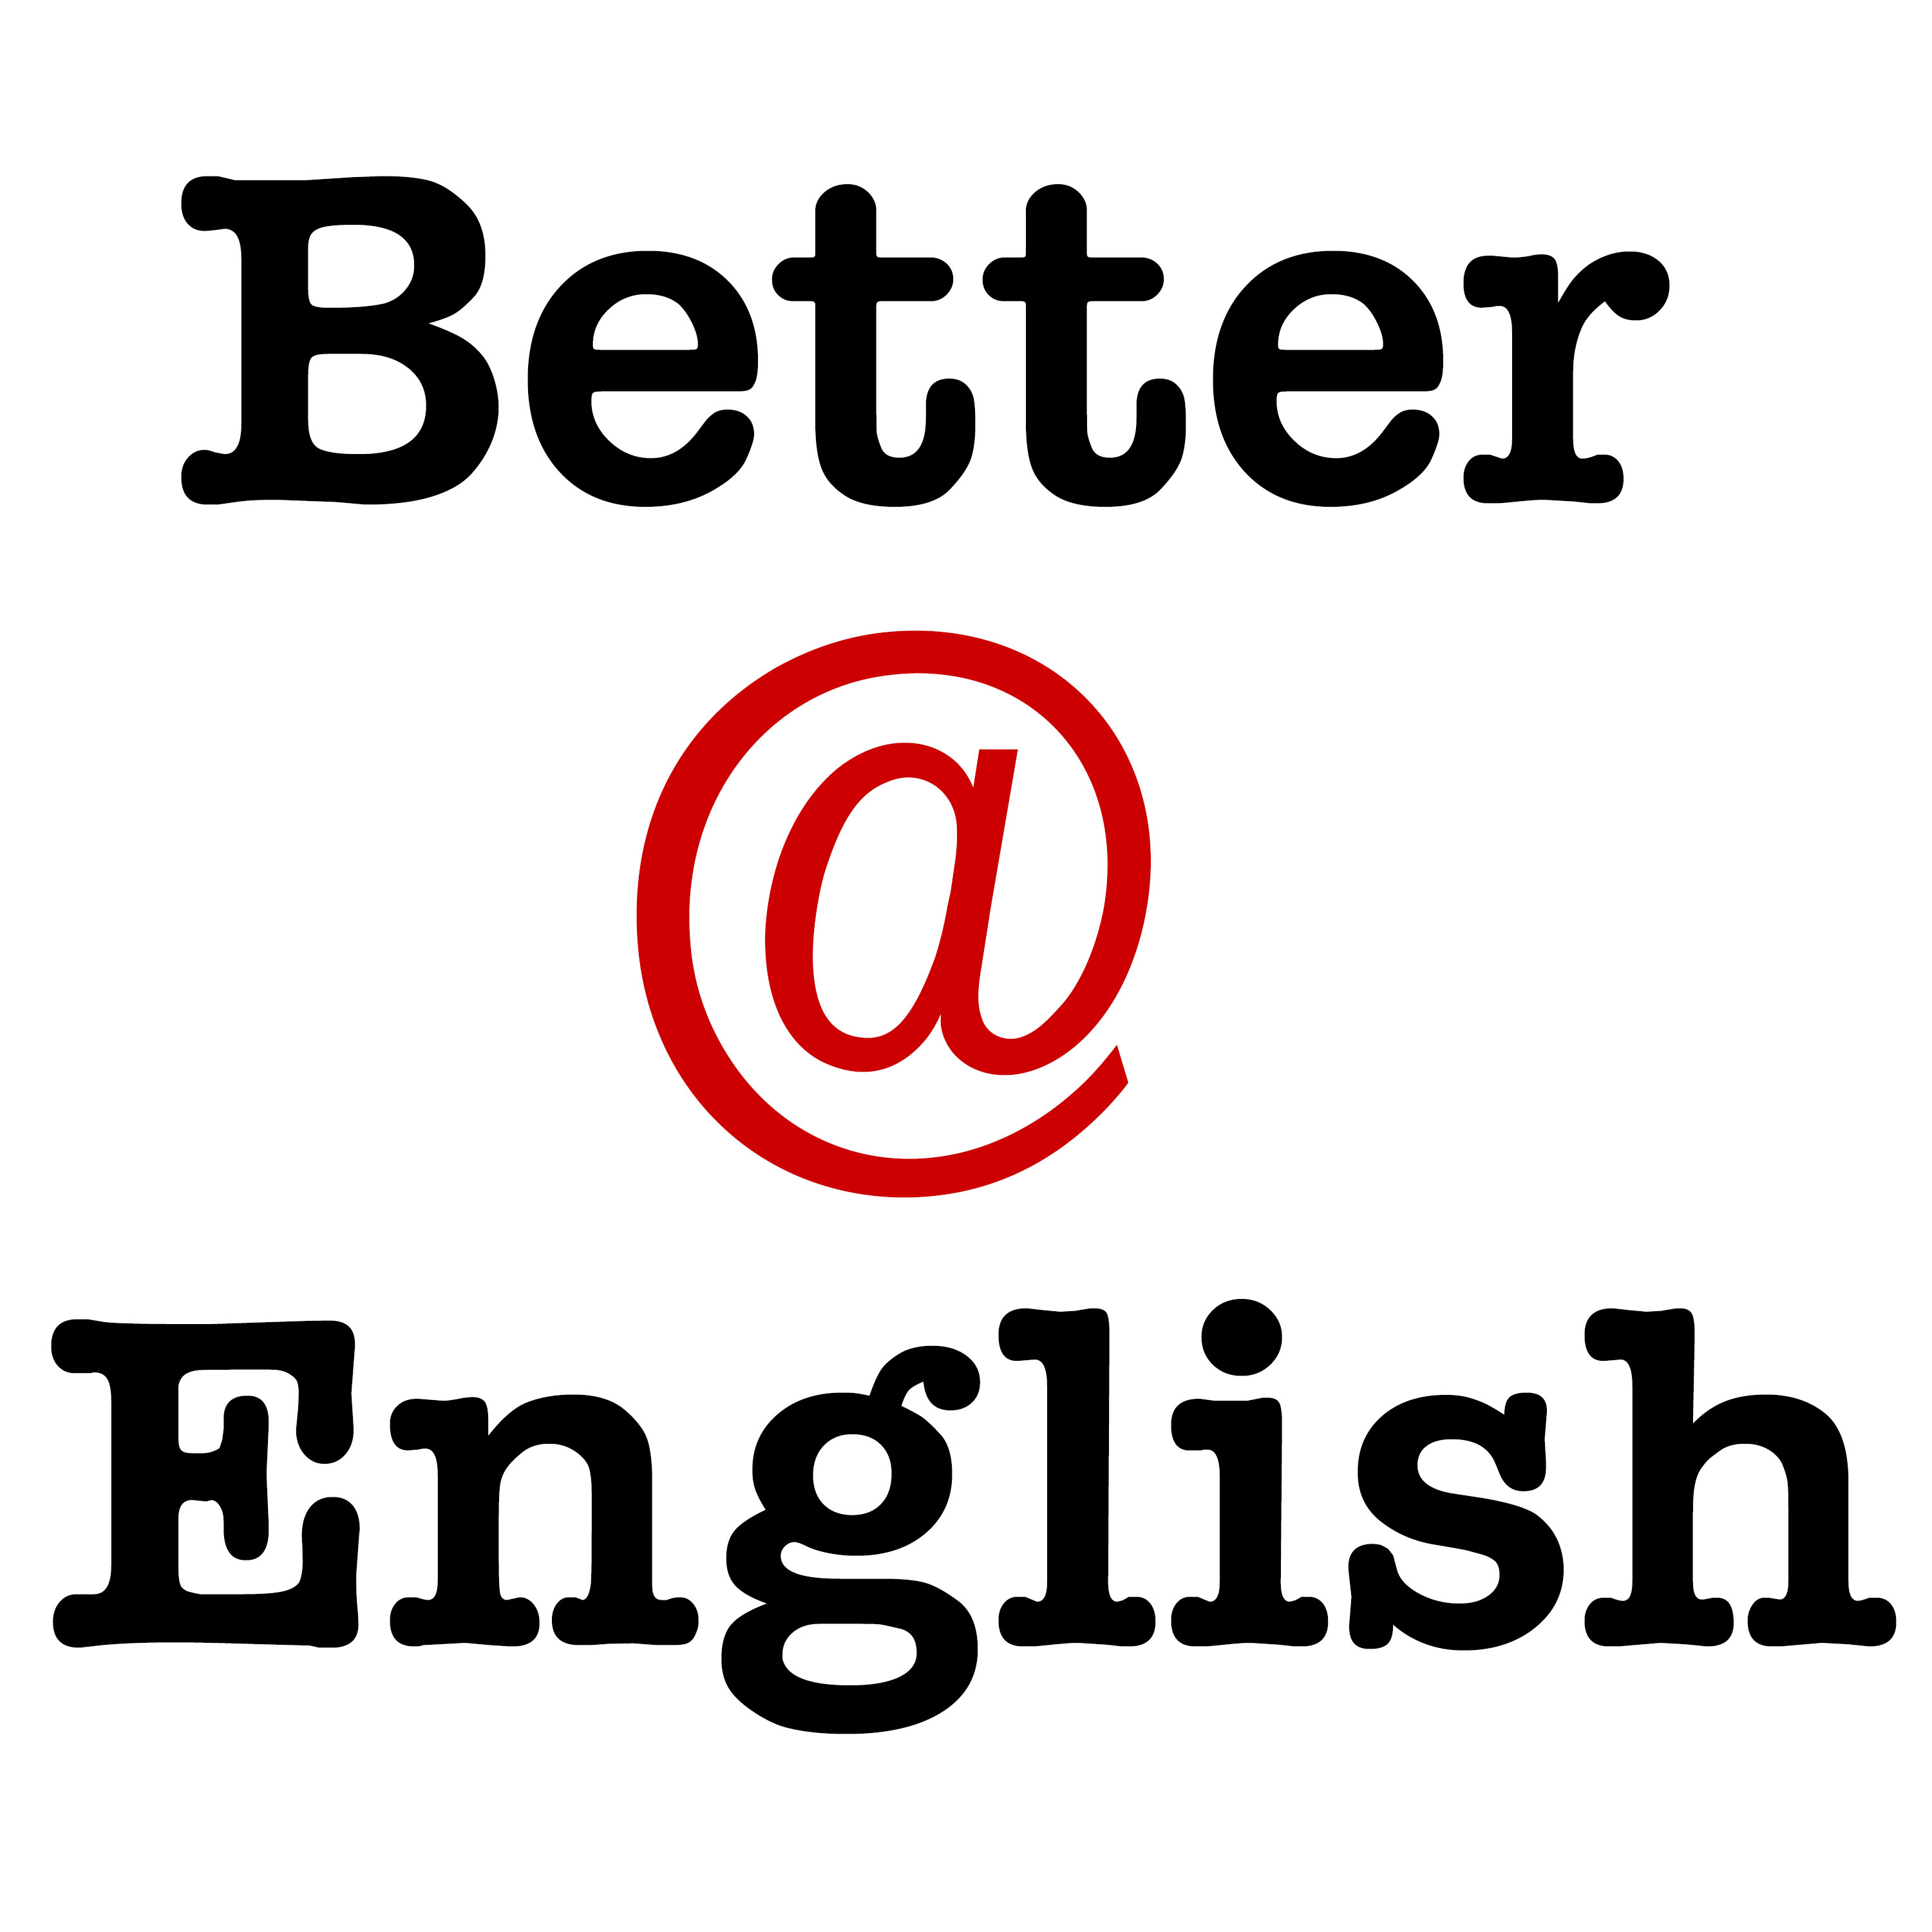 「better @ english podcast」の画像検索結果